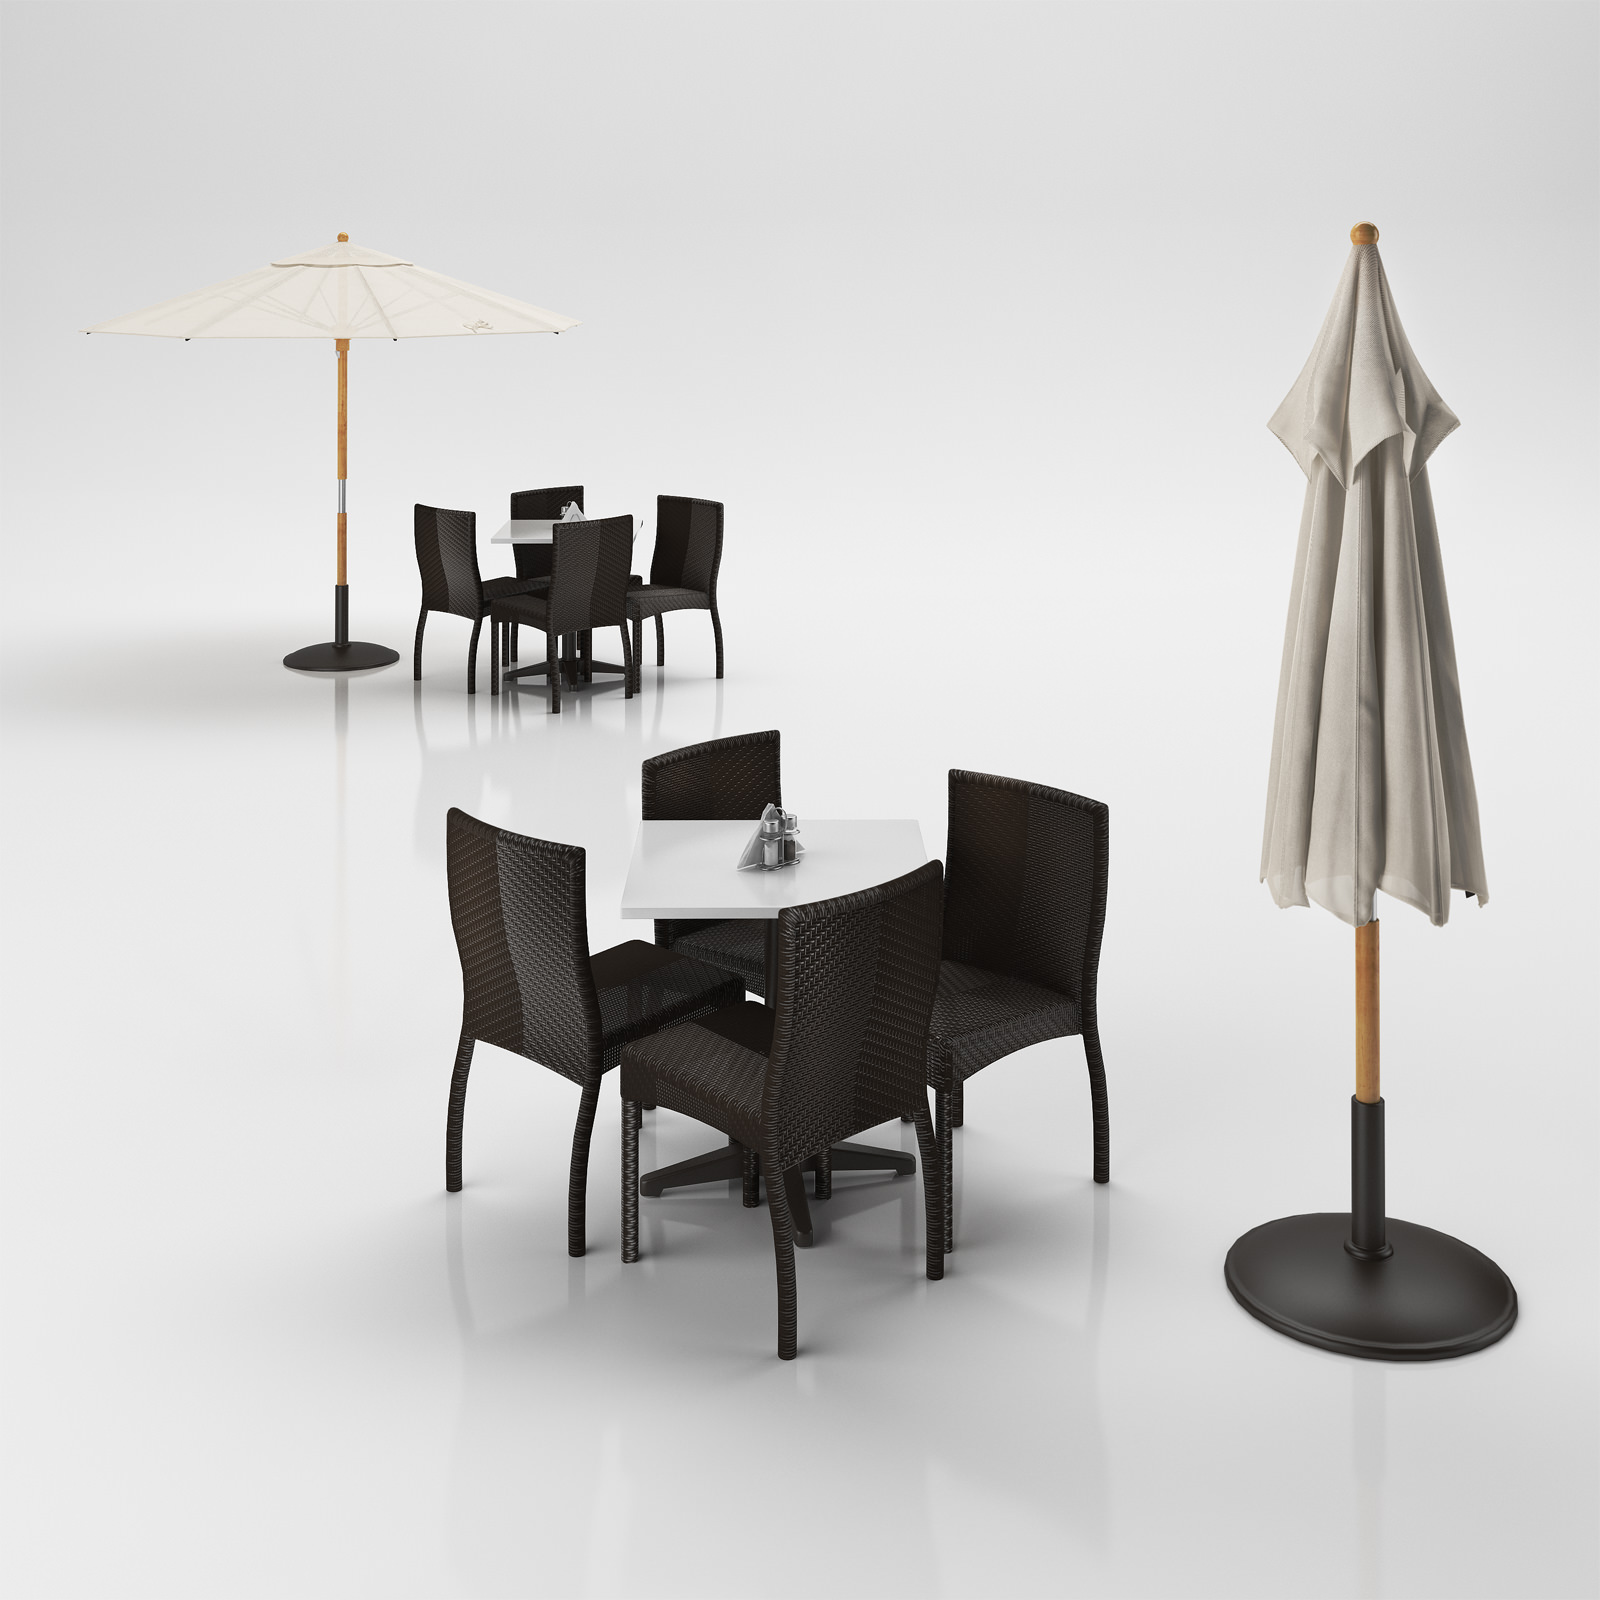 Filing Cabinet Outdoor Umbrella Table